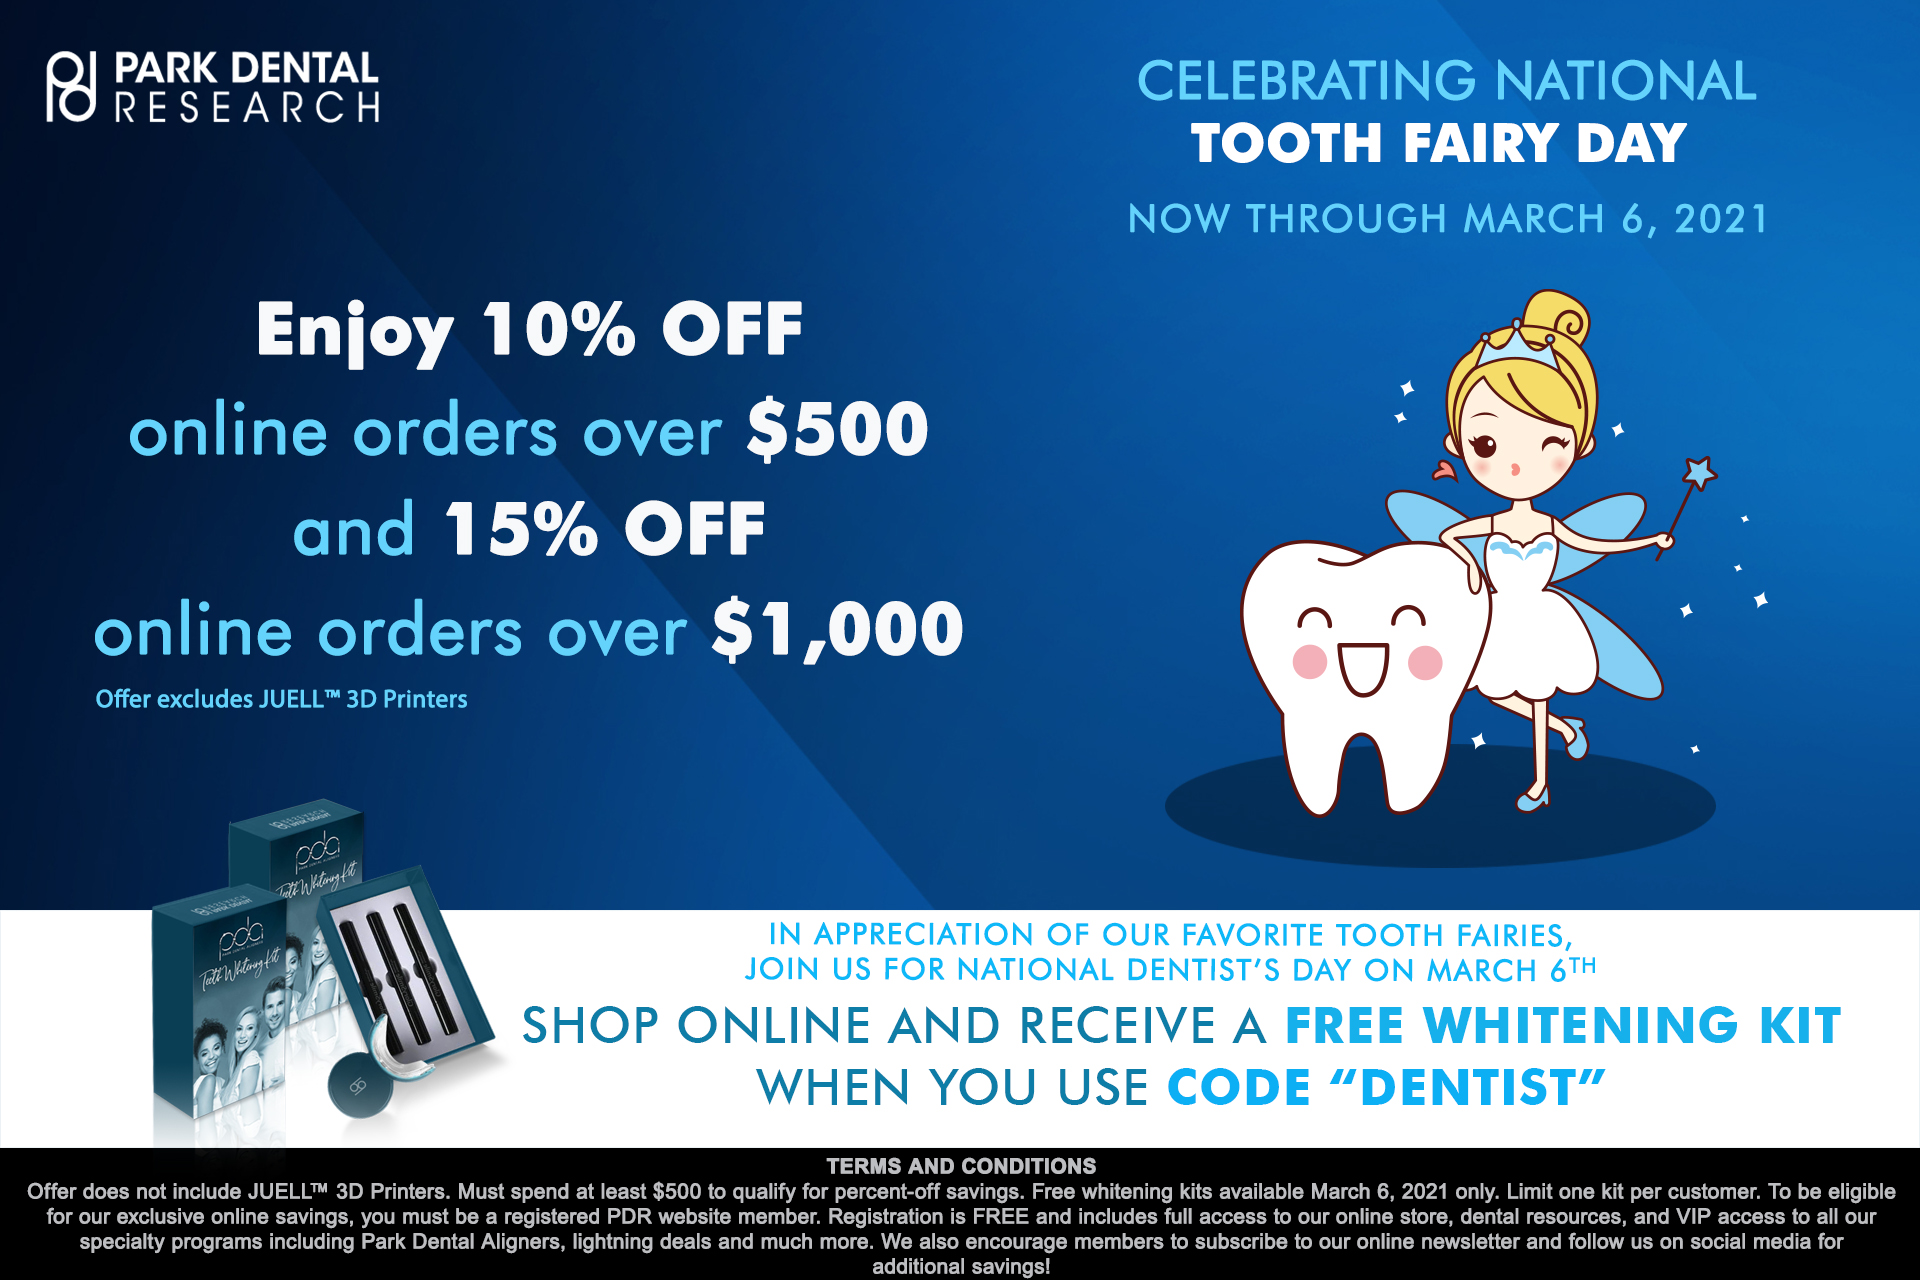 Celebrating National Tooth Fairy Day